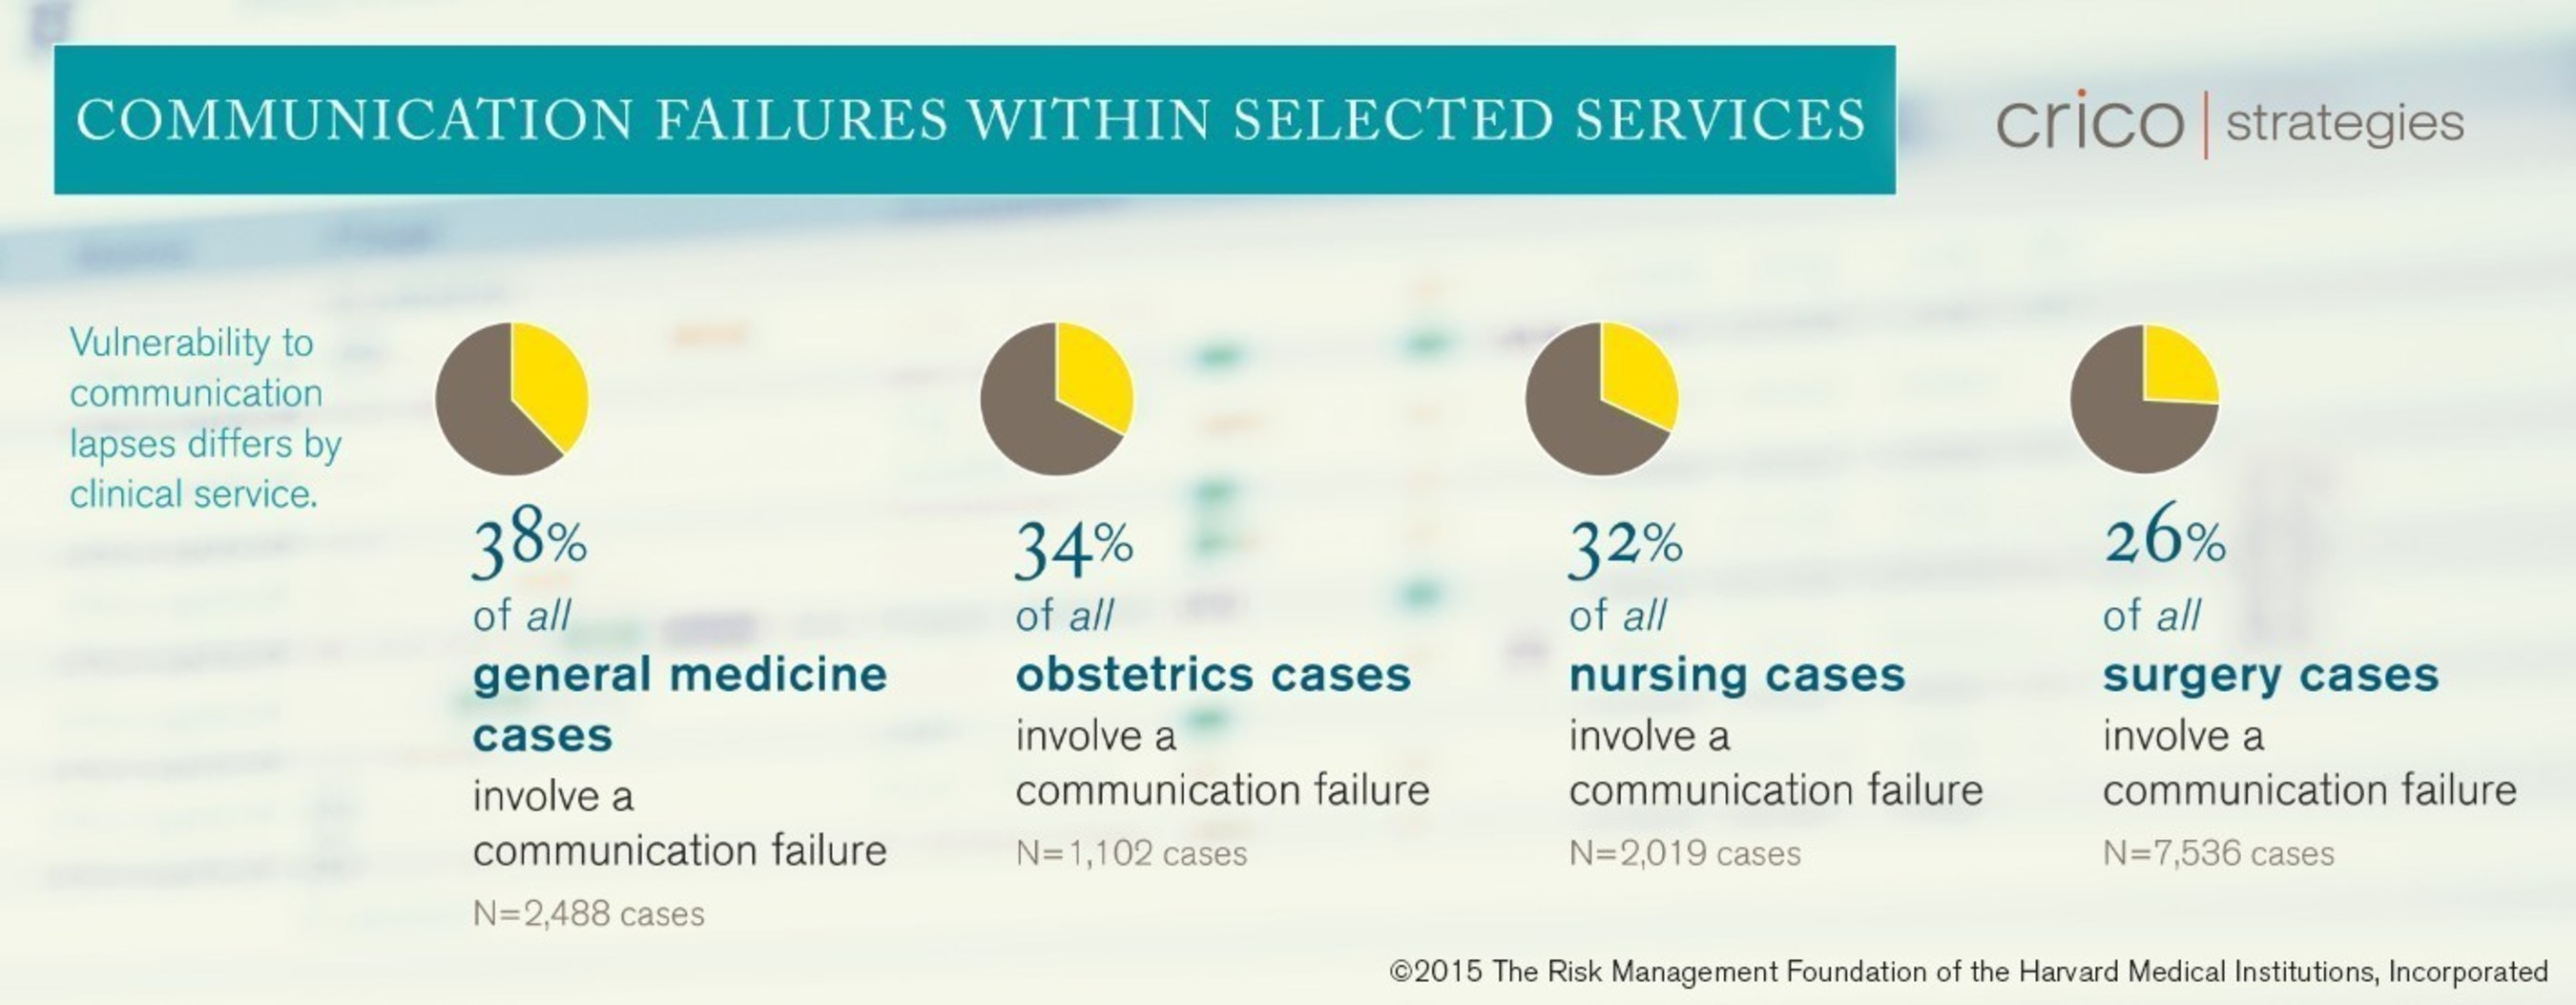 Communication failures within selected services (general medicine, obstetrics, nursing, surgery). Source: CRICO Strategies 2015 CBS Report: Malpractice Risks in Communication Failures.